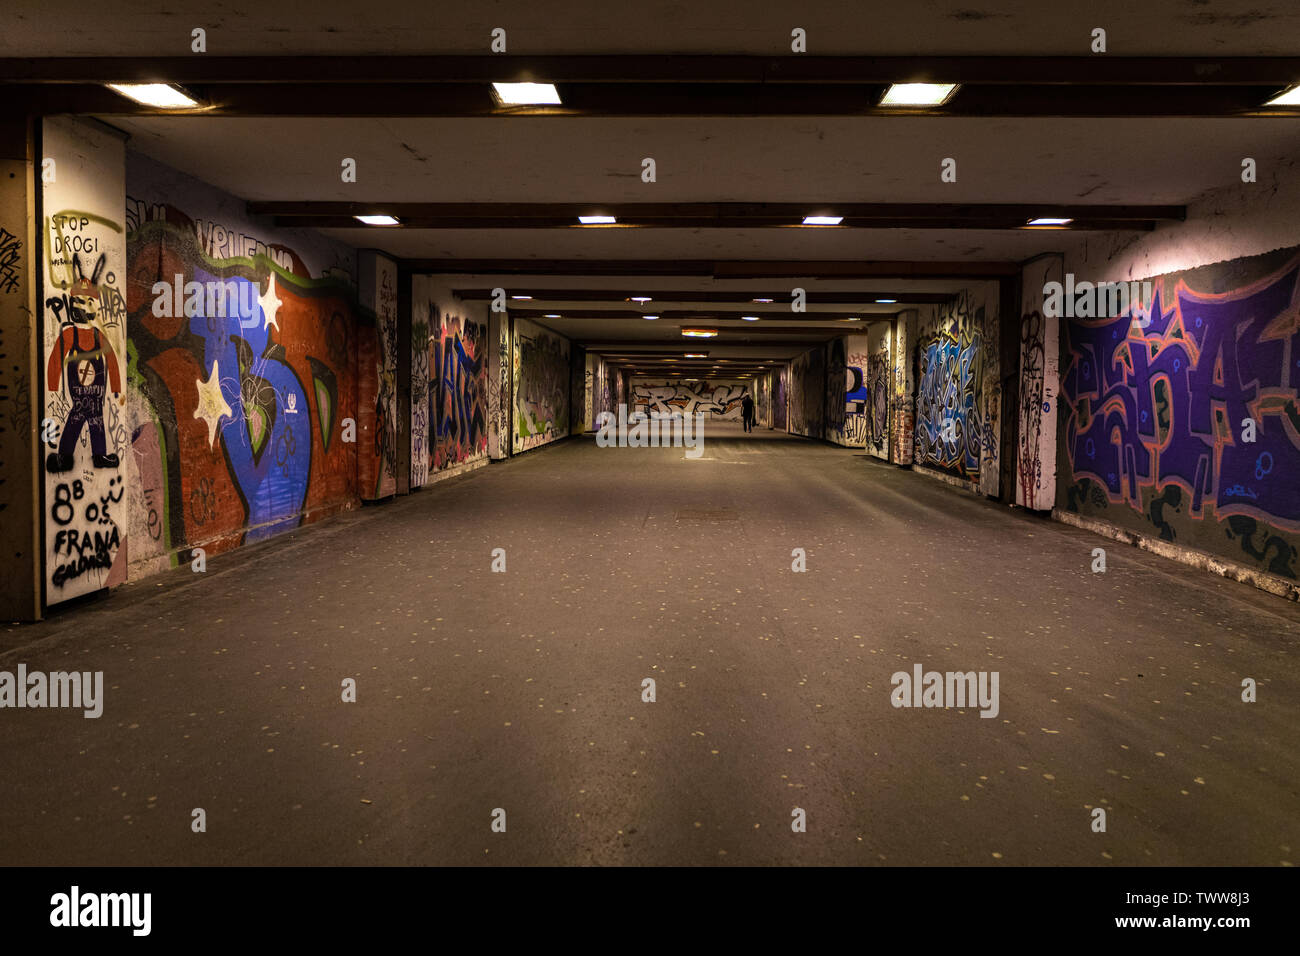 Croatia, Zagreb, June 21, the dark passage of a deserted, eerie creepy concrete indoor urban pathway grafted with graffiti at night - Stock Image